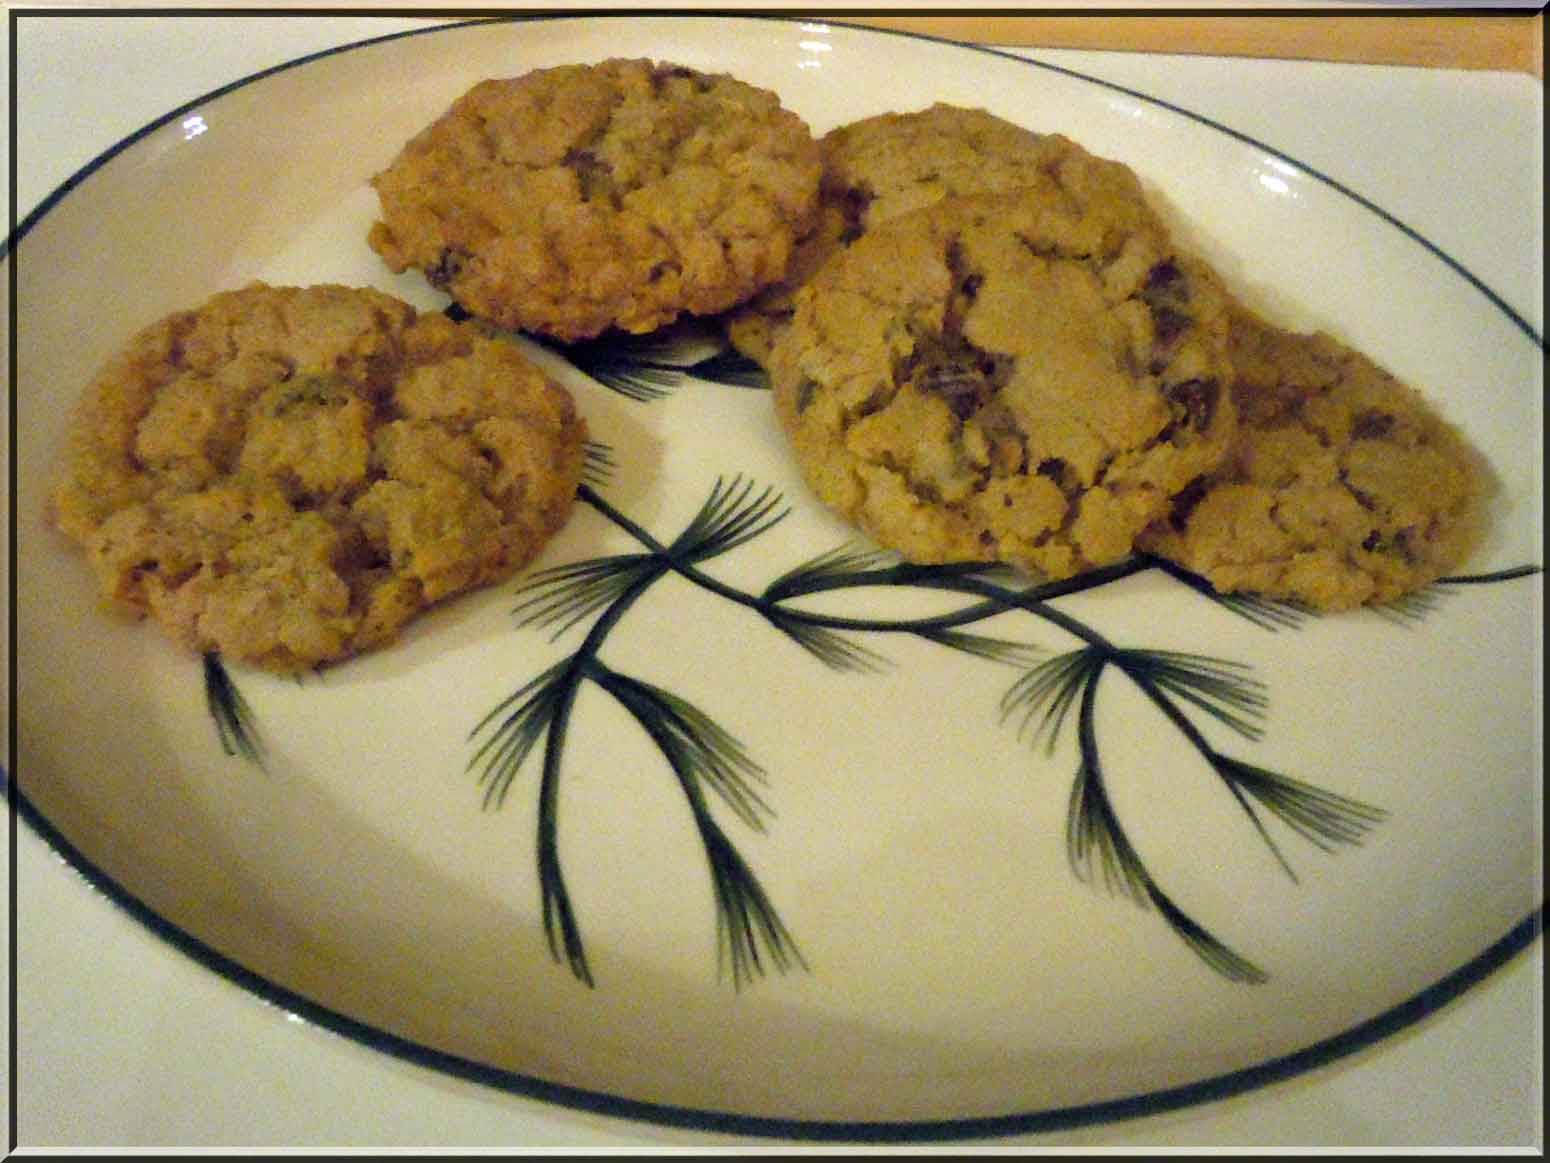 Oatmeal Cinnamon Chocolate Chip Cookies